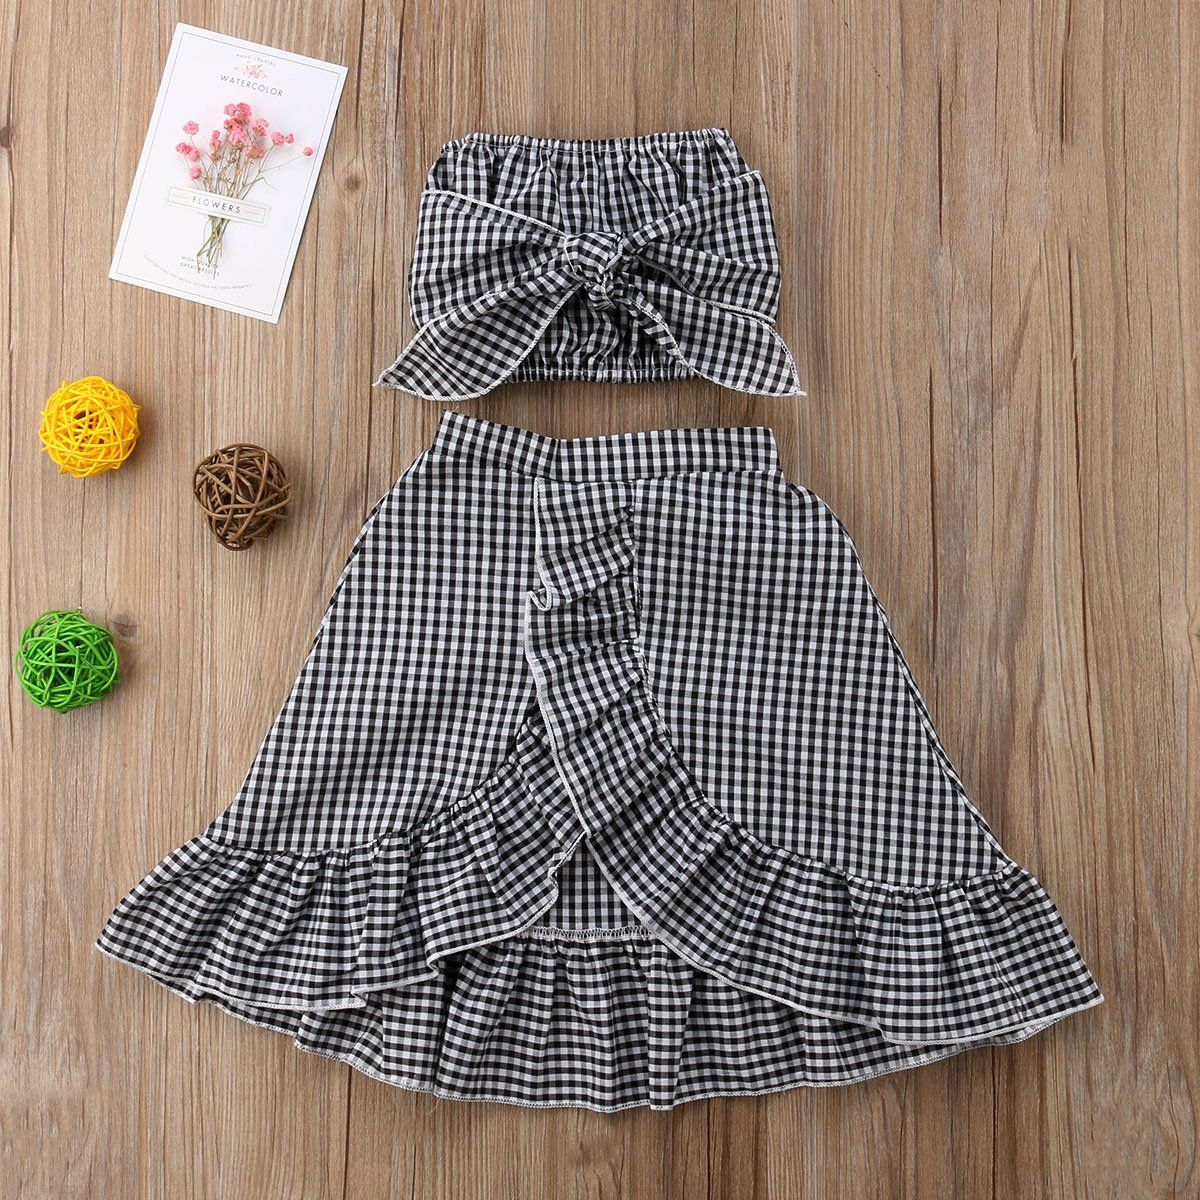 Trendy Gingham Printed Outfit Strapless Top With Bow And